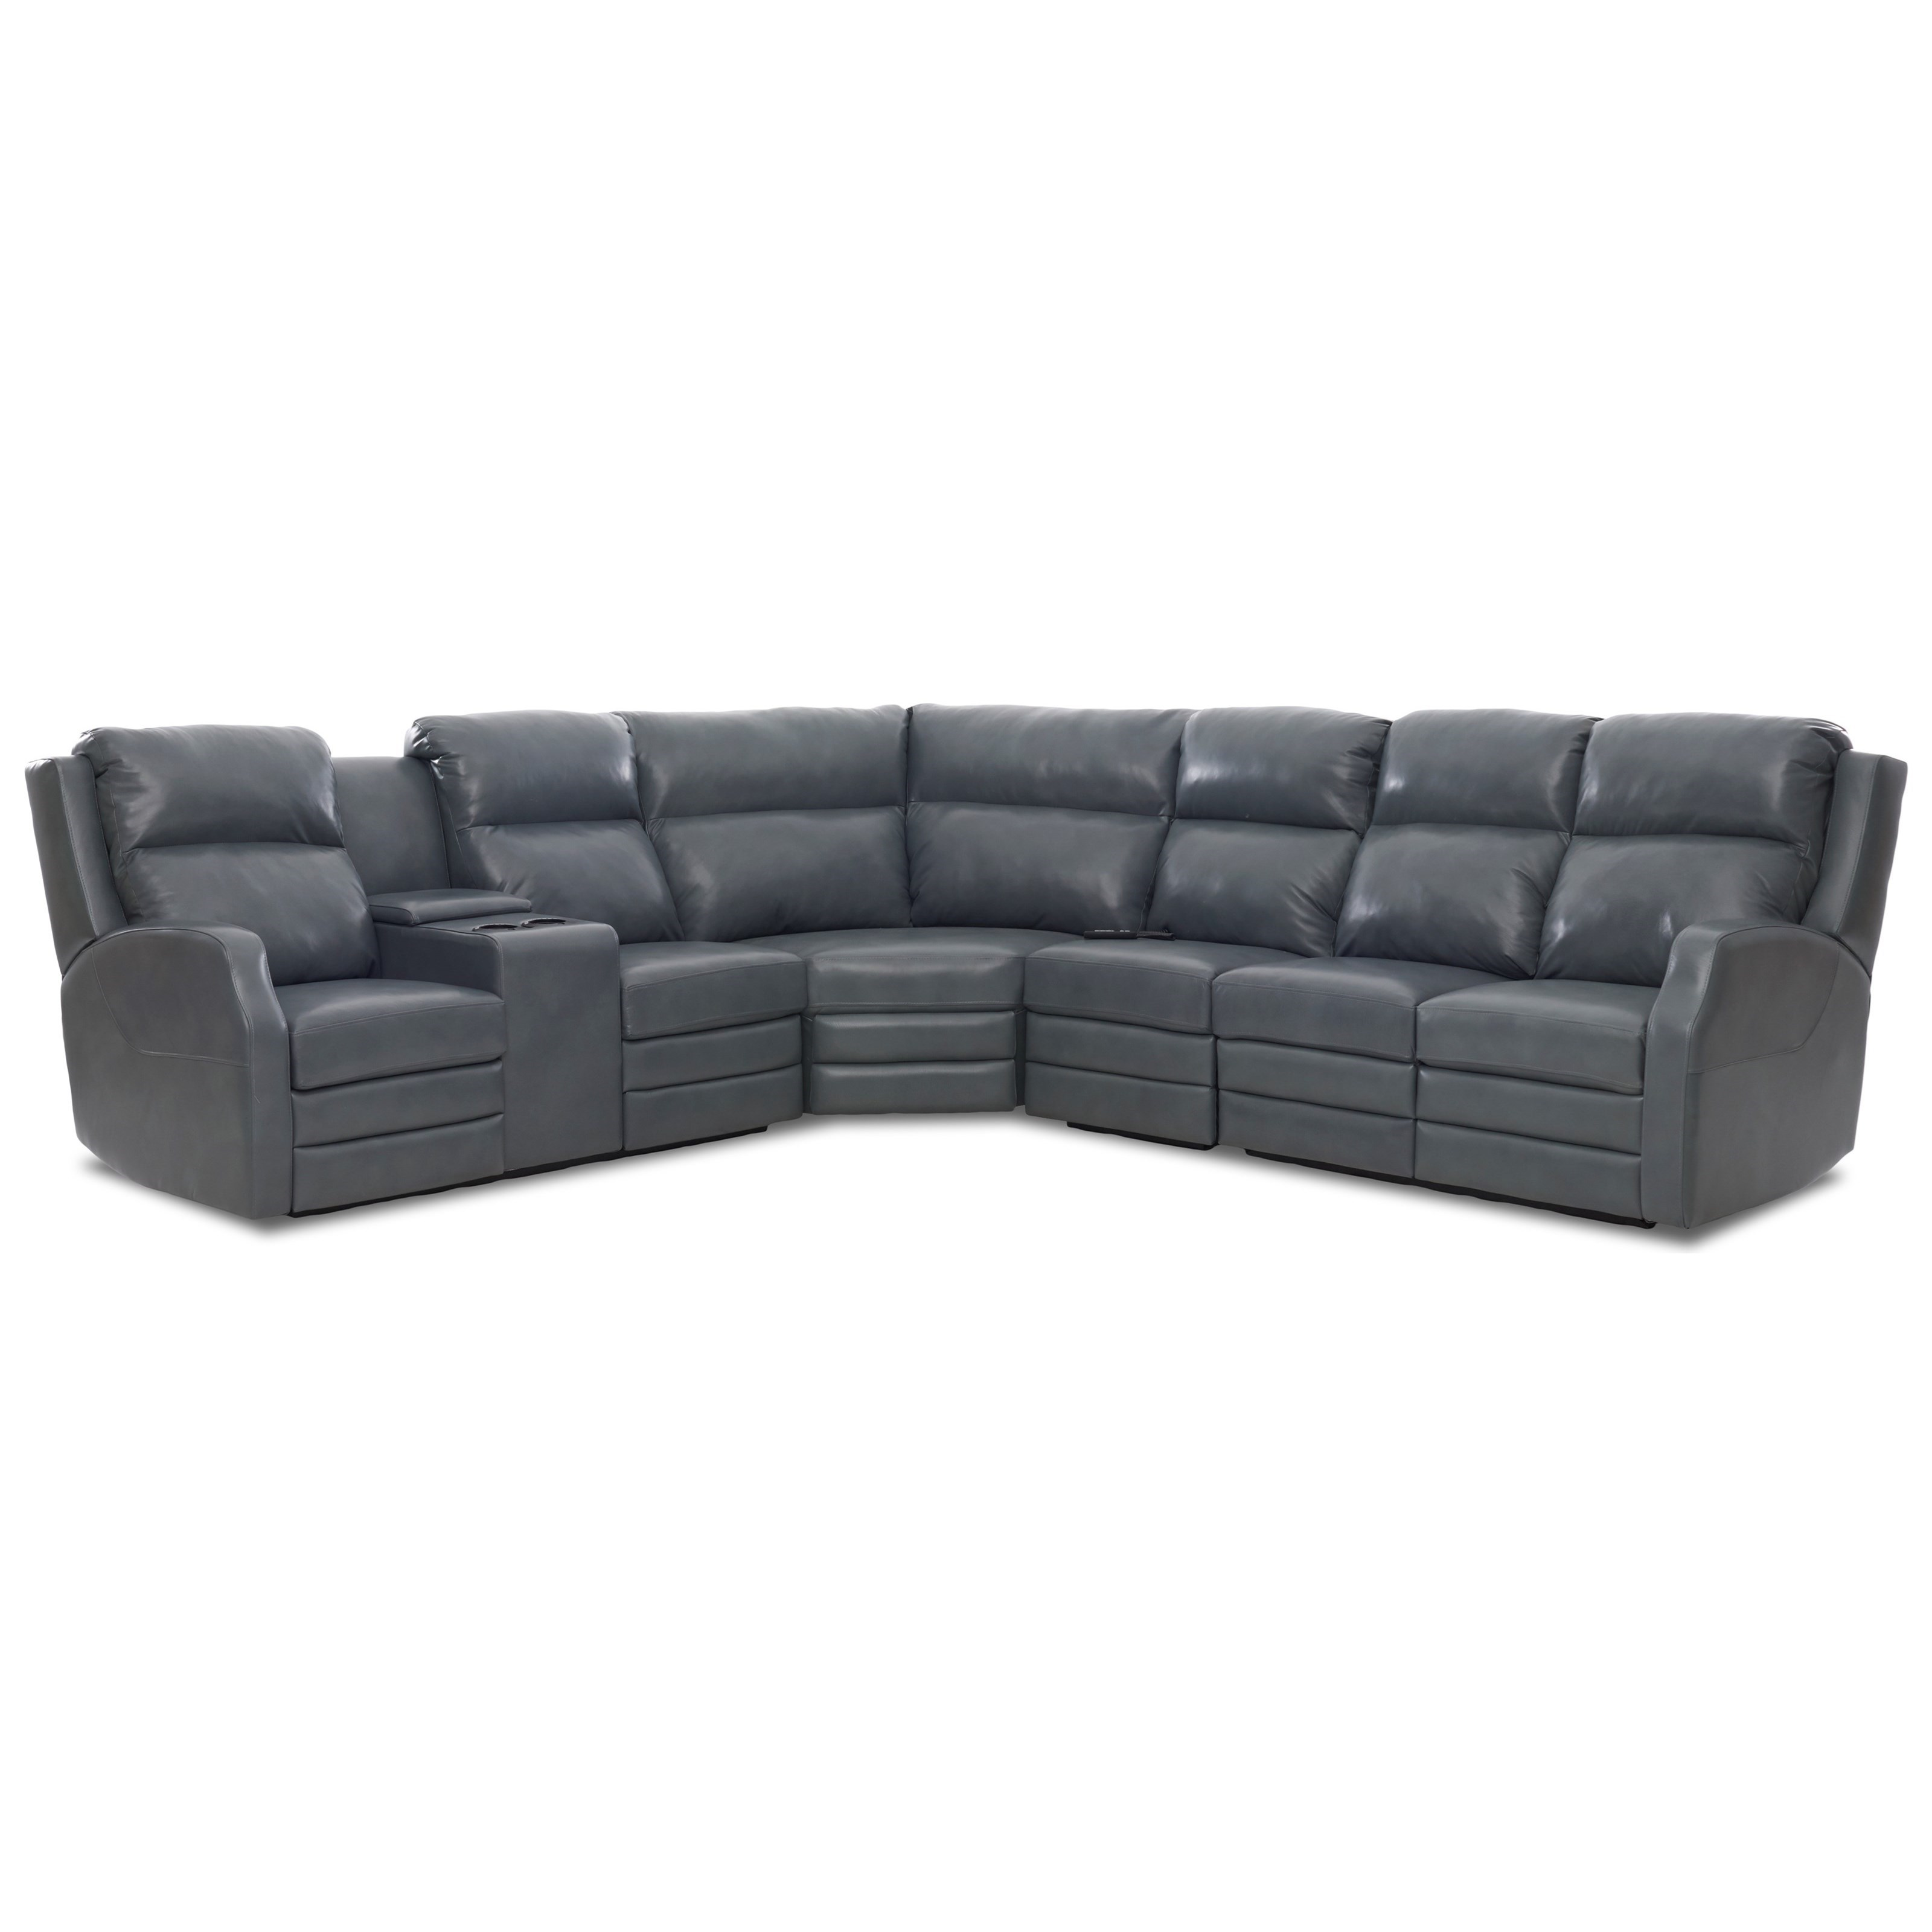 Kamiah 4 Seat Pwr Reclining Sect Sofa w/ Pwr Head by Klaussner at Lapeer Furniture & Mattress Center